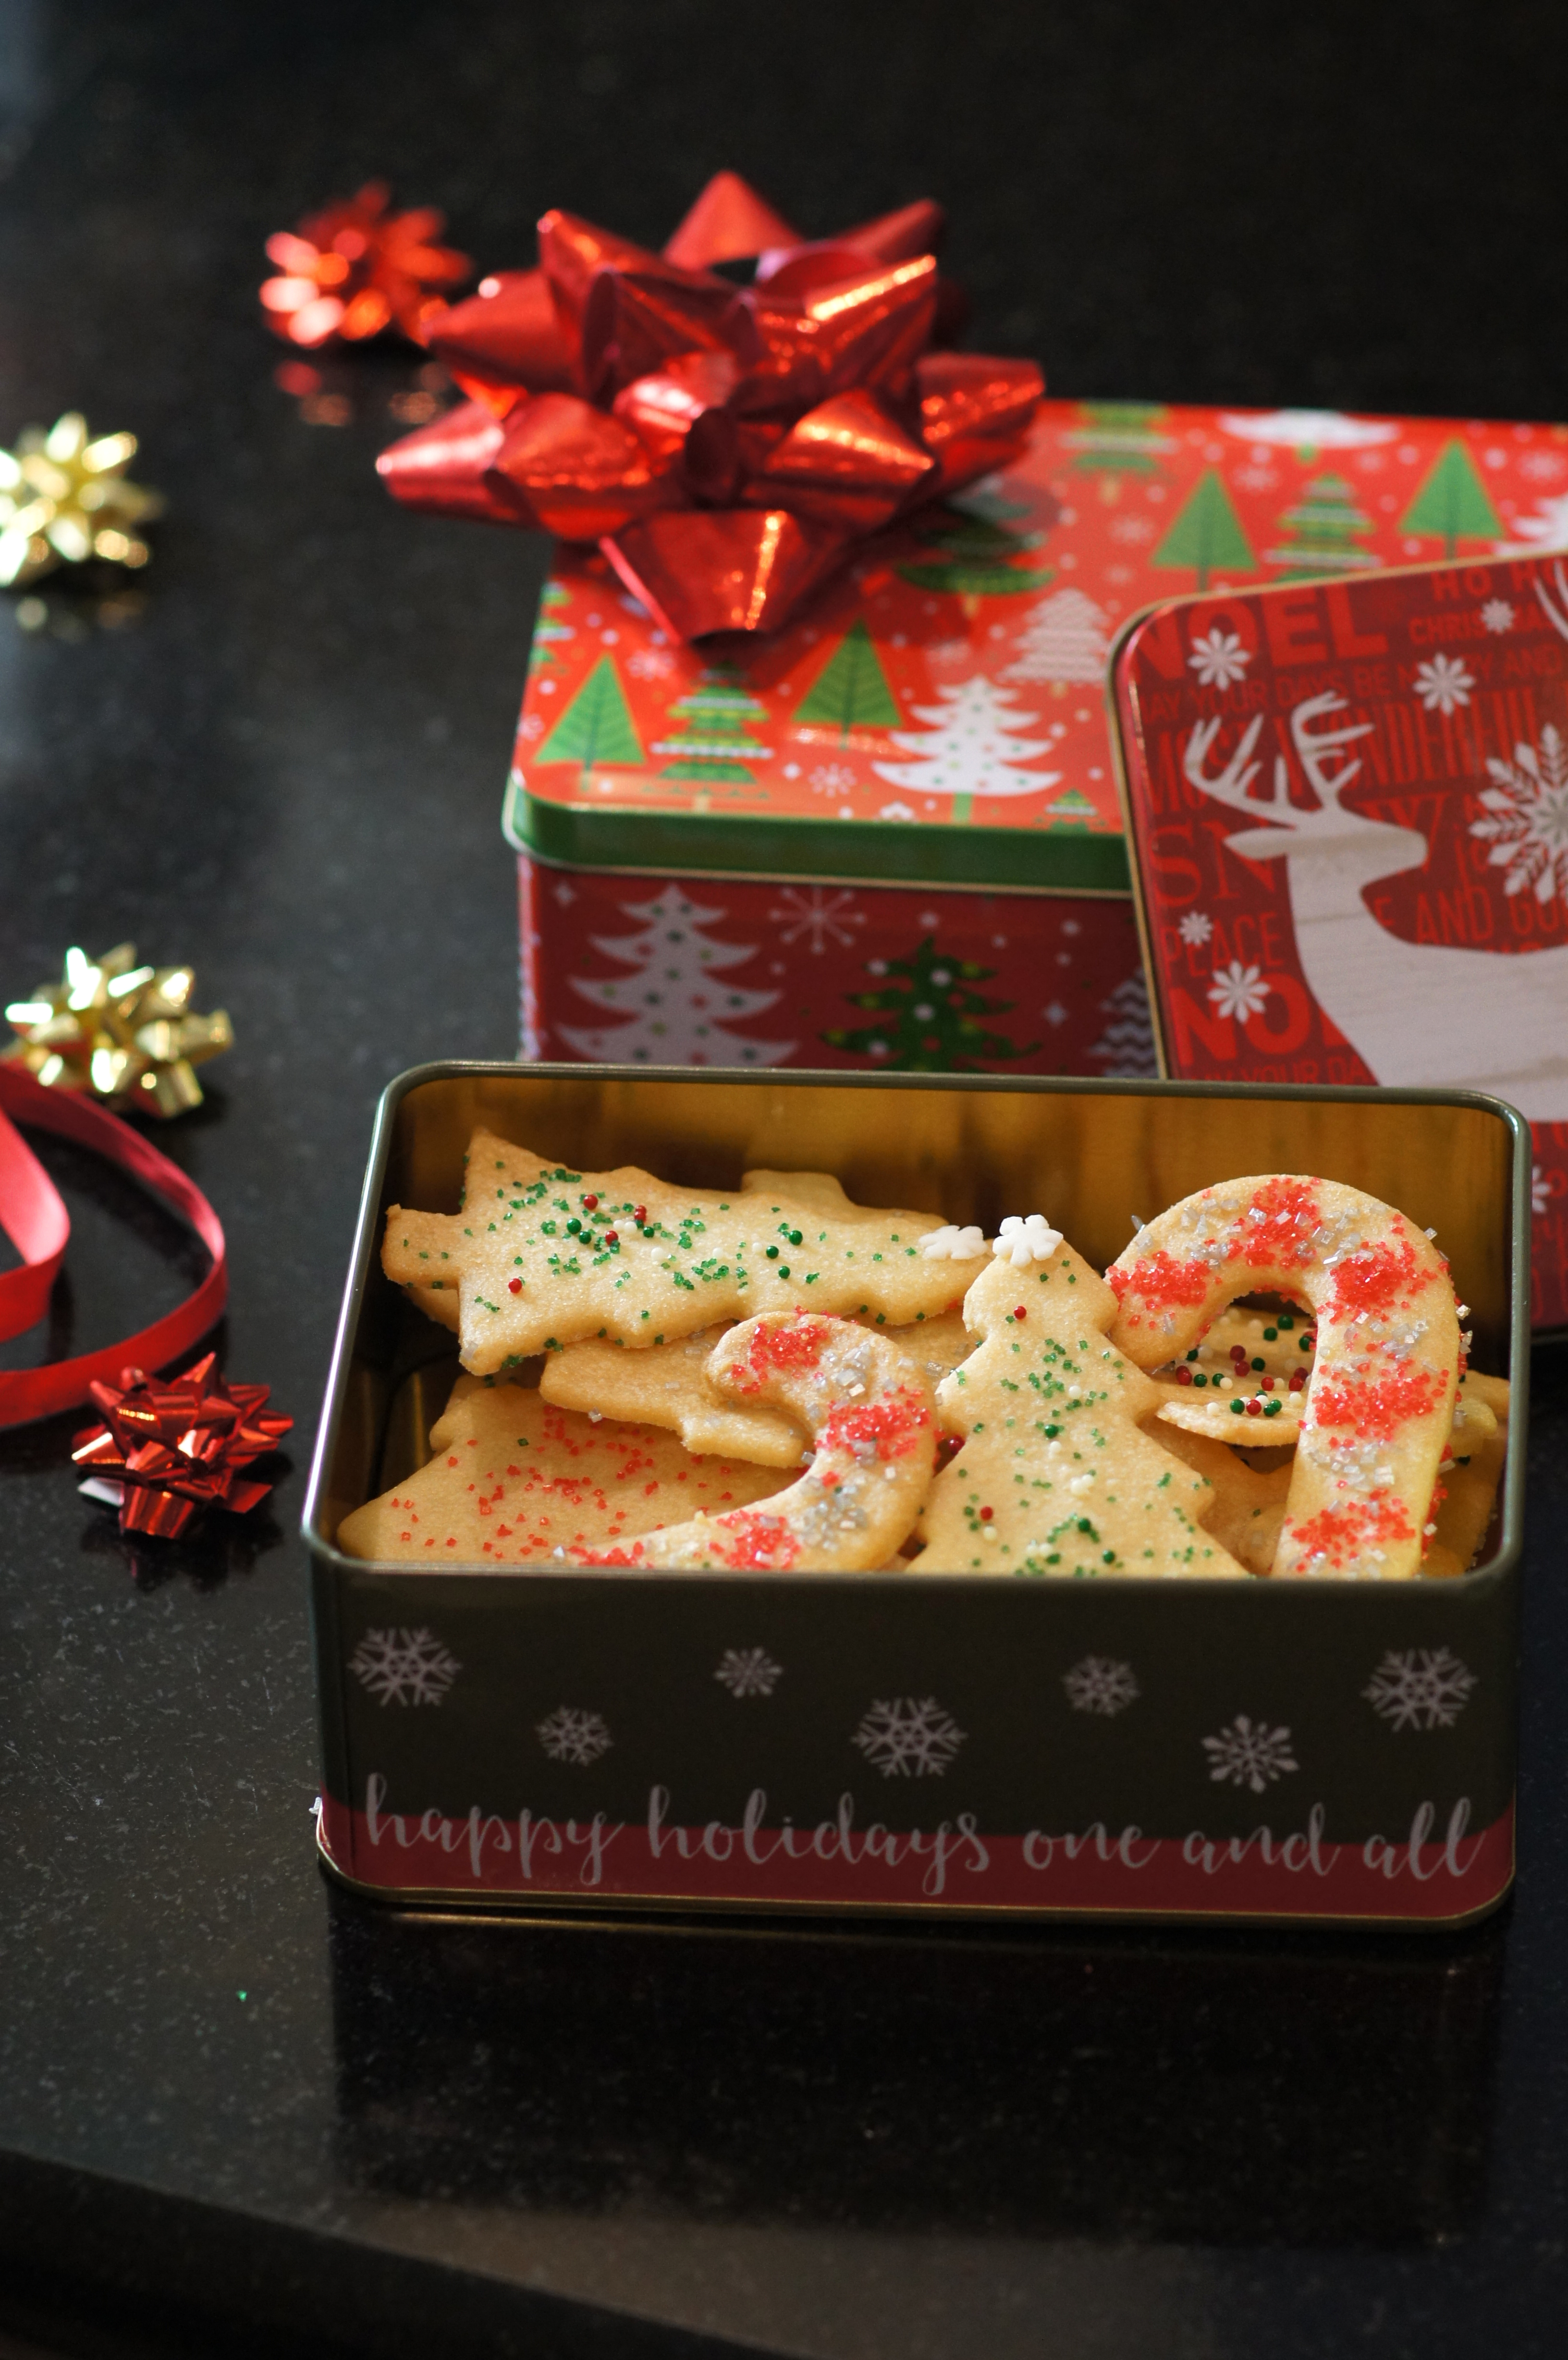 Decorated Sand Tarts in Christmas Tins